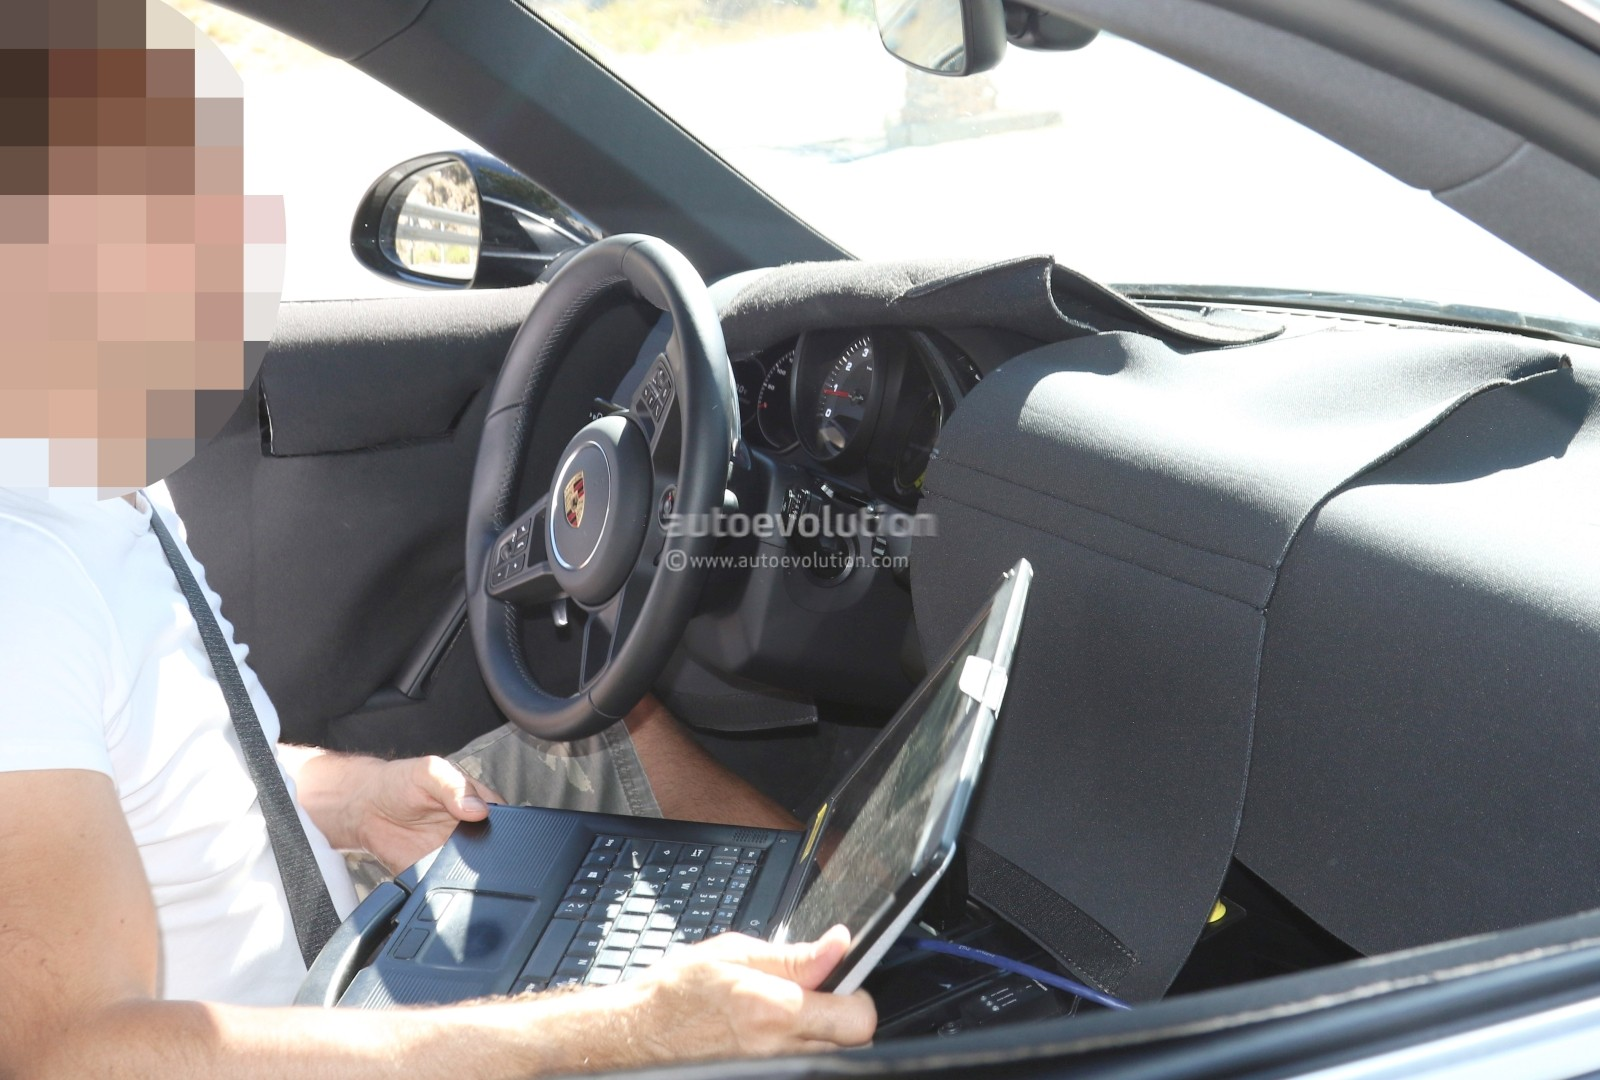 2019 Porsche 911 992 Interior Spied Shows New Steering Wheel